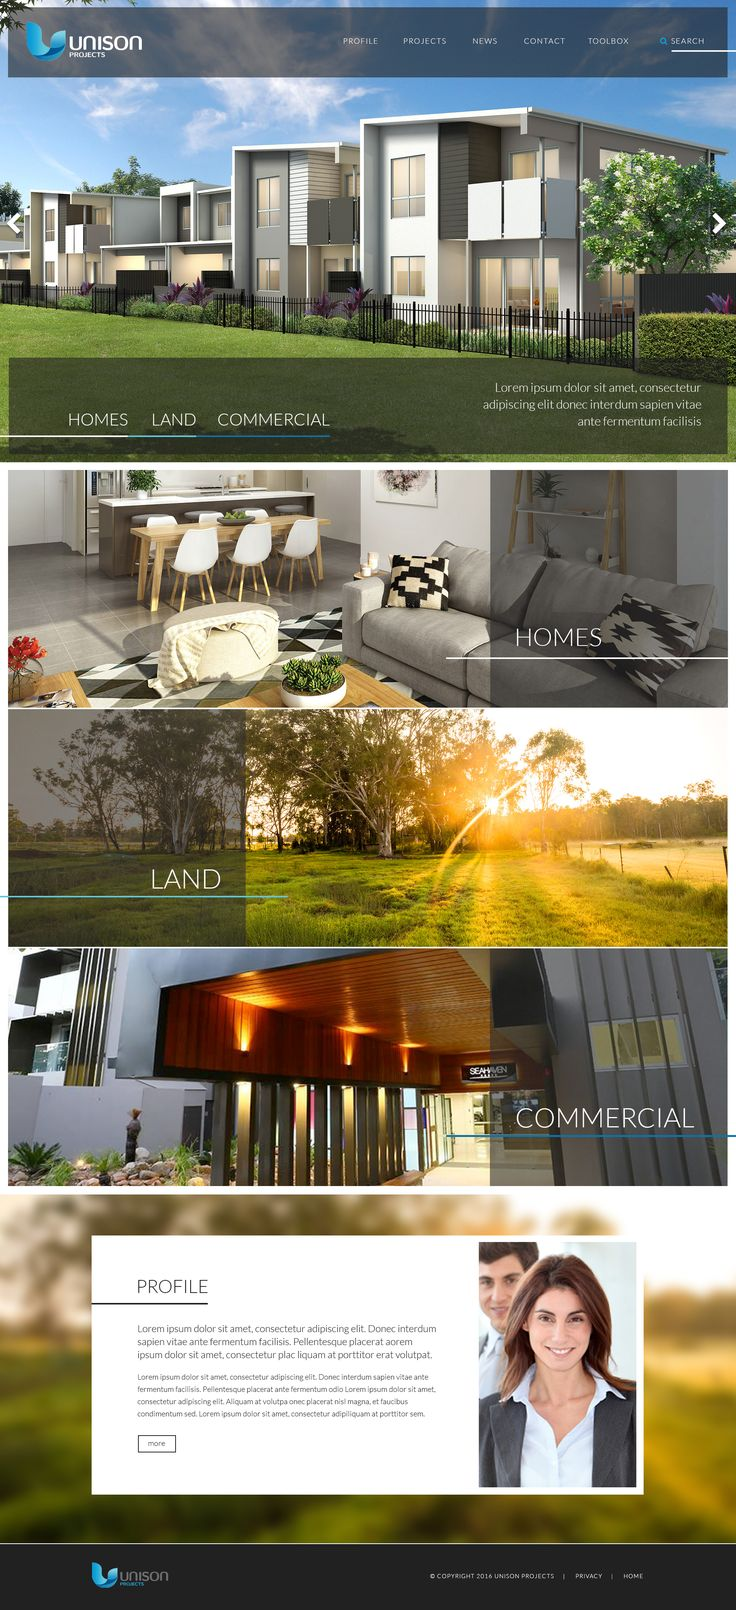 Unison Projects is a private property development firm with over 15 years experience, across all sectors of the property market. Creating beautiful homes to not only live in and enjoy but be proud to own.  http://www.unisonprojects.net.au/  #‎pebbledesign‬ ‪#‎hotelwebdesign‬ ‪#‎hotelwebsites‬ ‪#‎webdesign‬ ‪#‎websitedesign‬ #ResponsiveWebDesign #stunningwebdesign #creativewebdesign #customwebdesign #webdesigninspiration